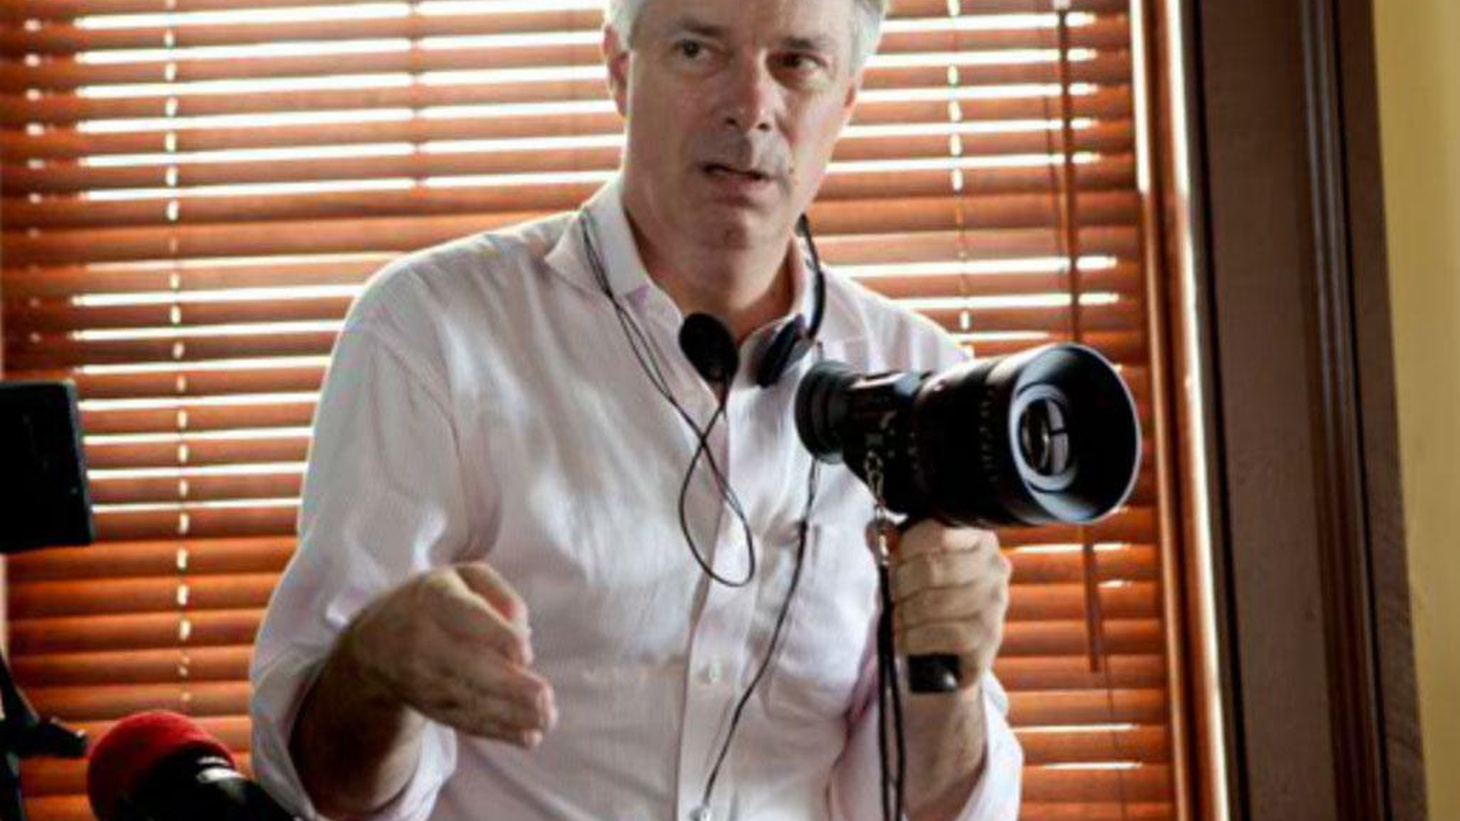 """Elvis Mitchell talks to writer/director Whit Stillman about his new film """"Damsels in Distress,"""" and his return to filmmaking after a 13 year hiatus."""